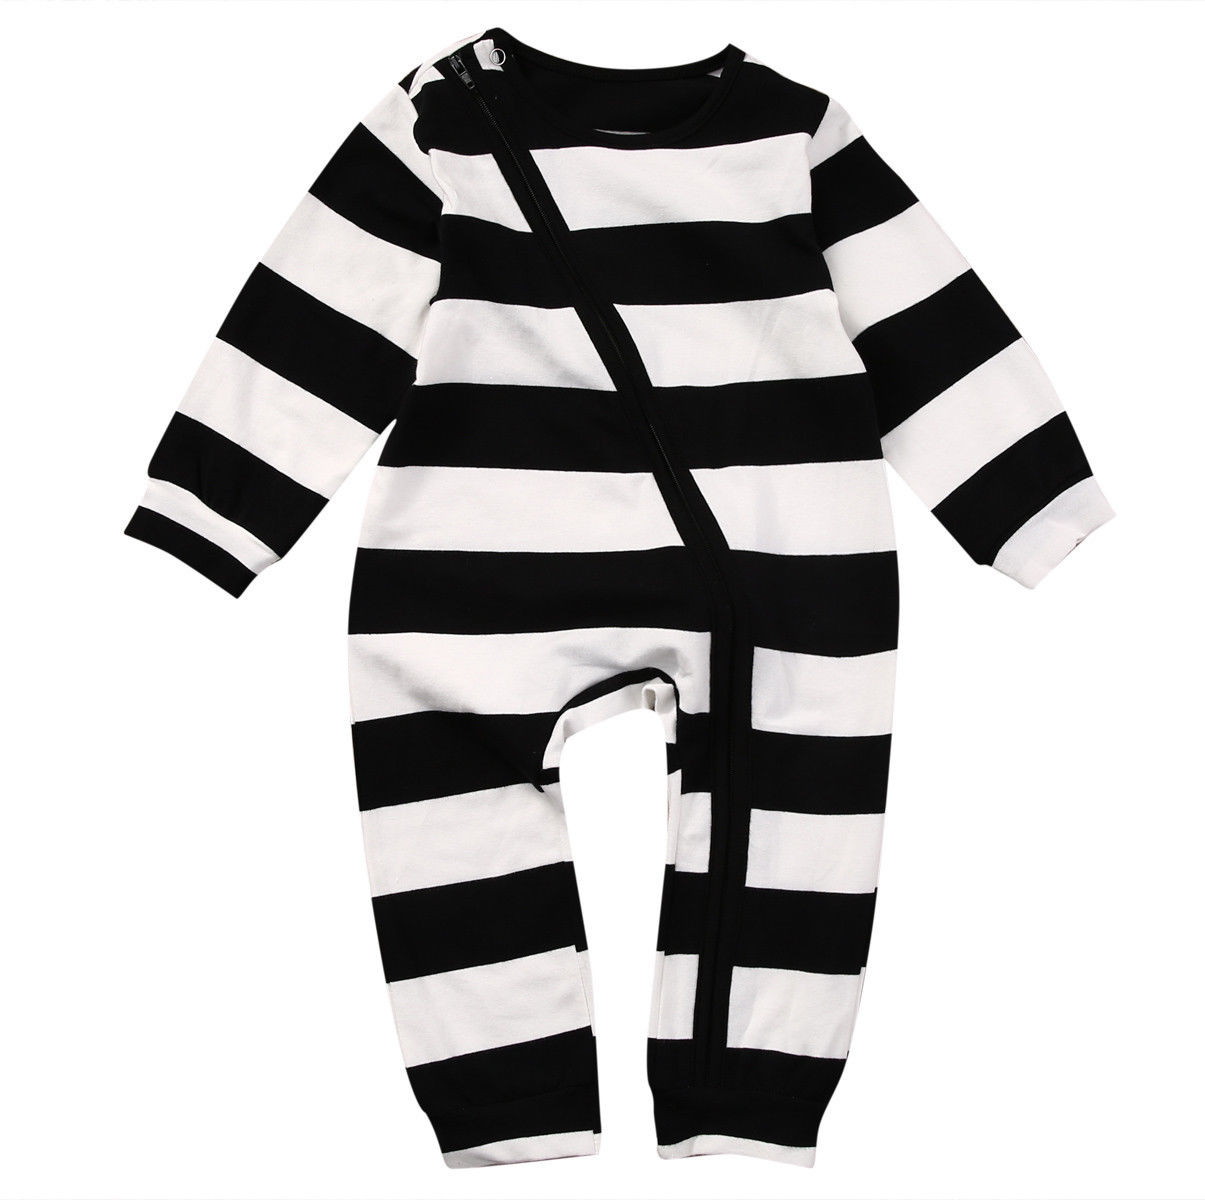 50ea3225c4b Unisex Baby Kids Boy Girl Long Sleeve Striped Romper Cotton Jumpsuit  Playsuit Outfit Clothes-in Rompers from Mother   Kids on Aliexpress.com